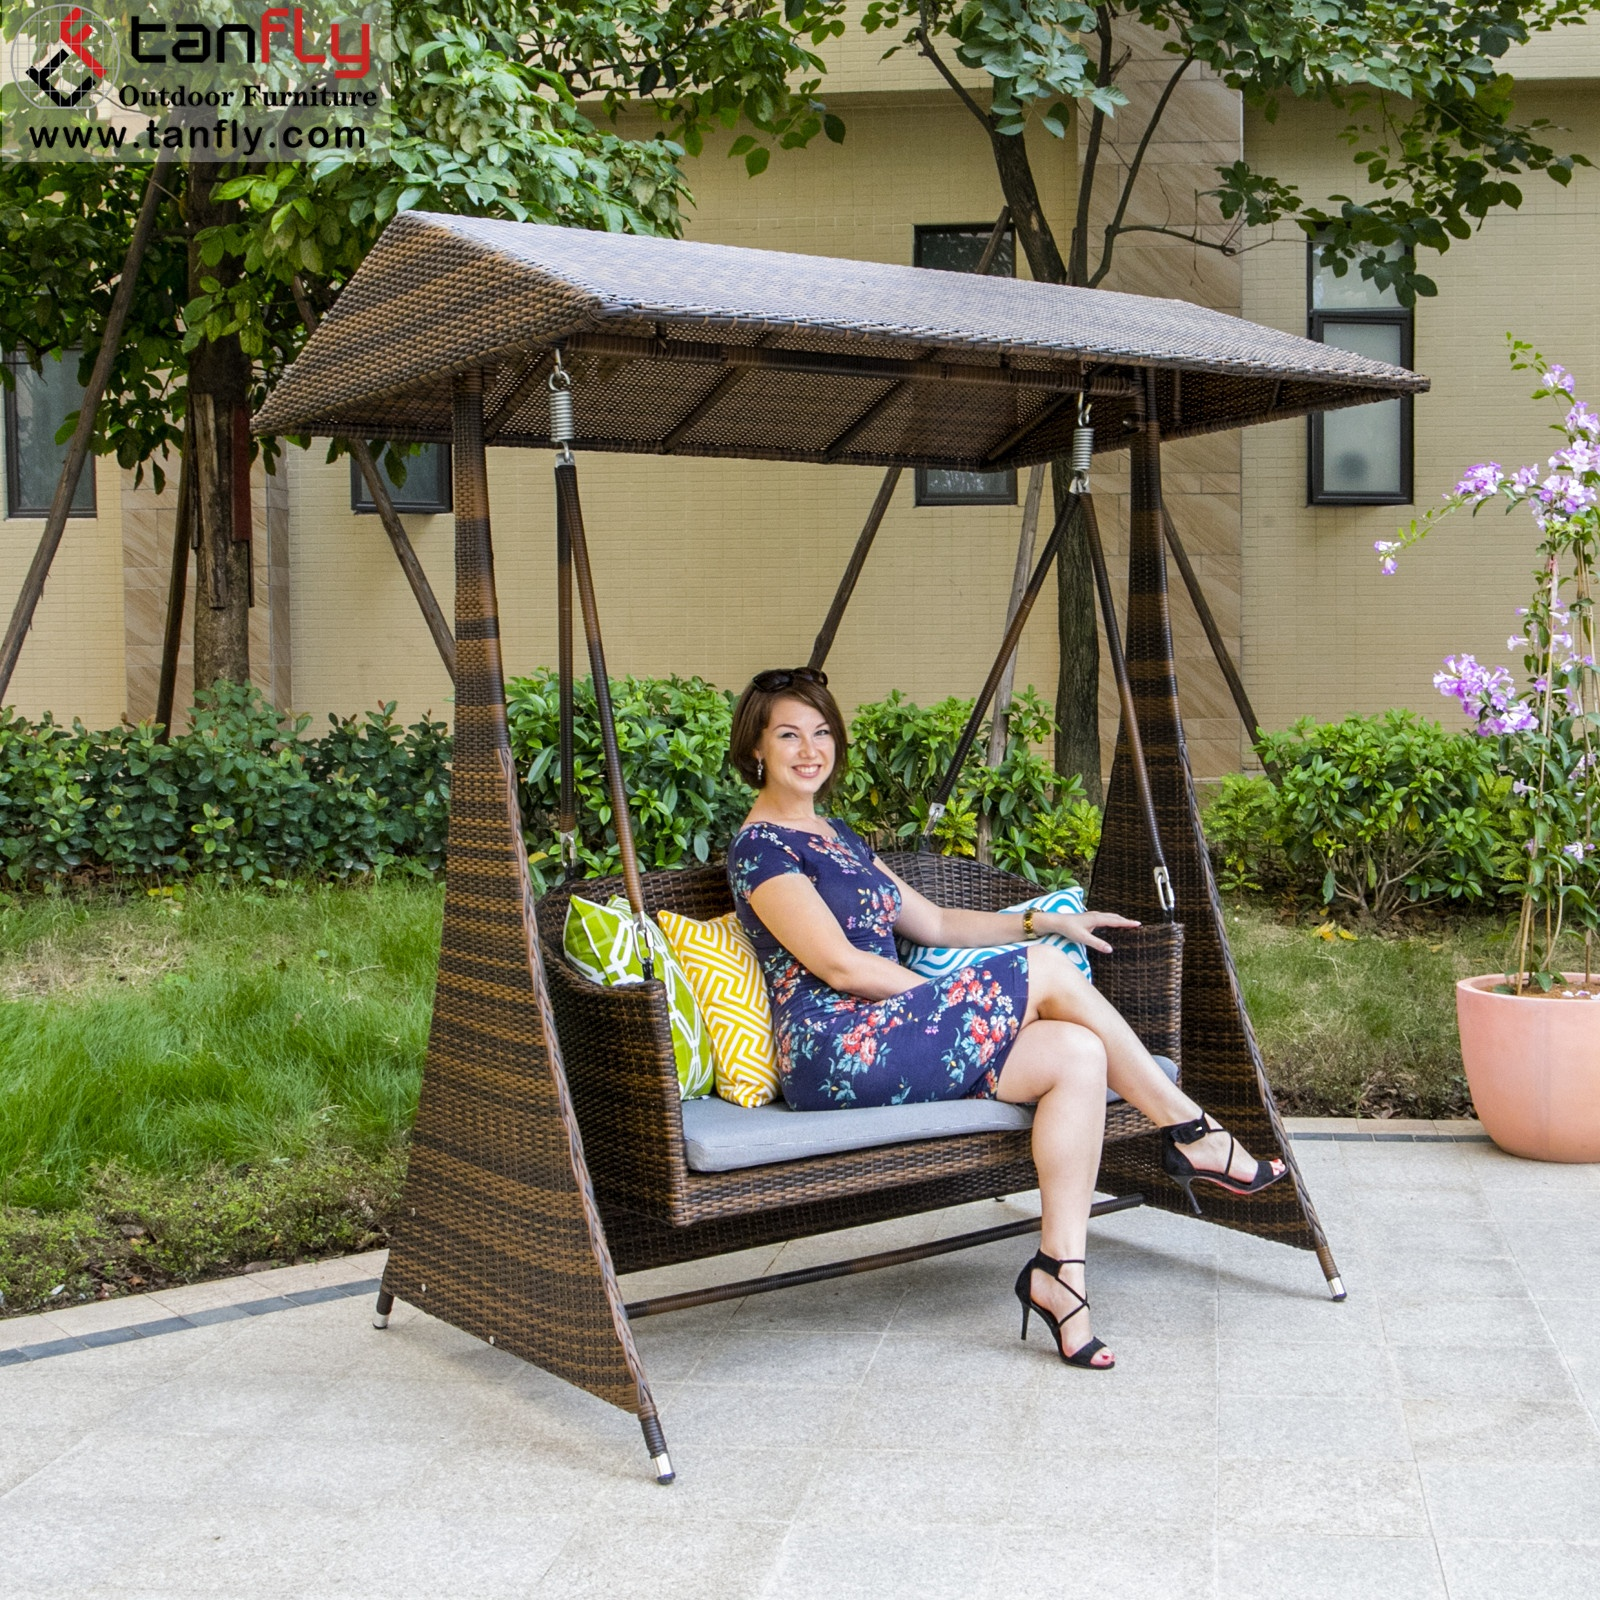 2 Seater Swing Chair Canopy